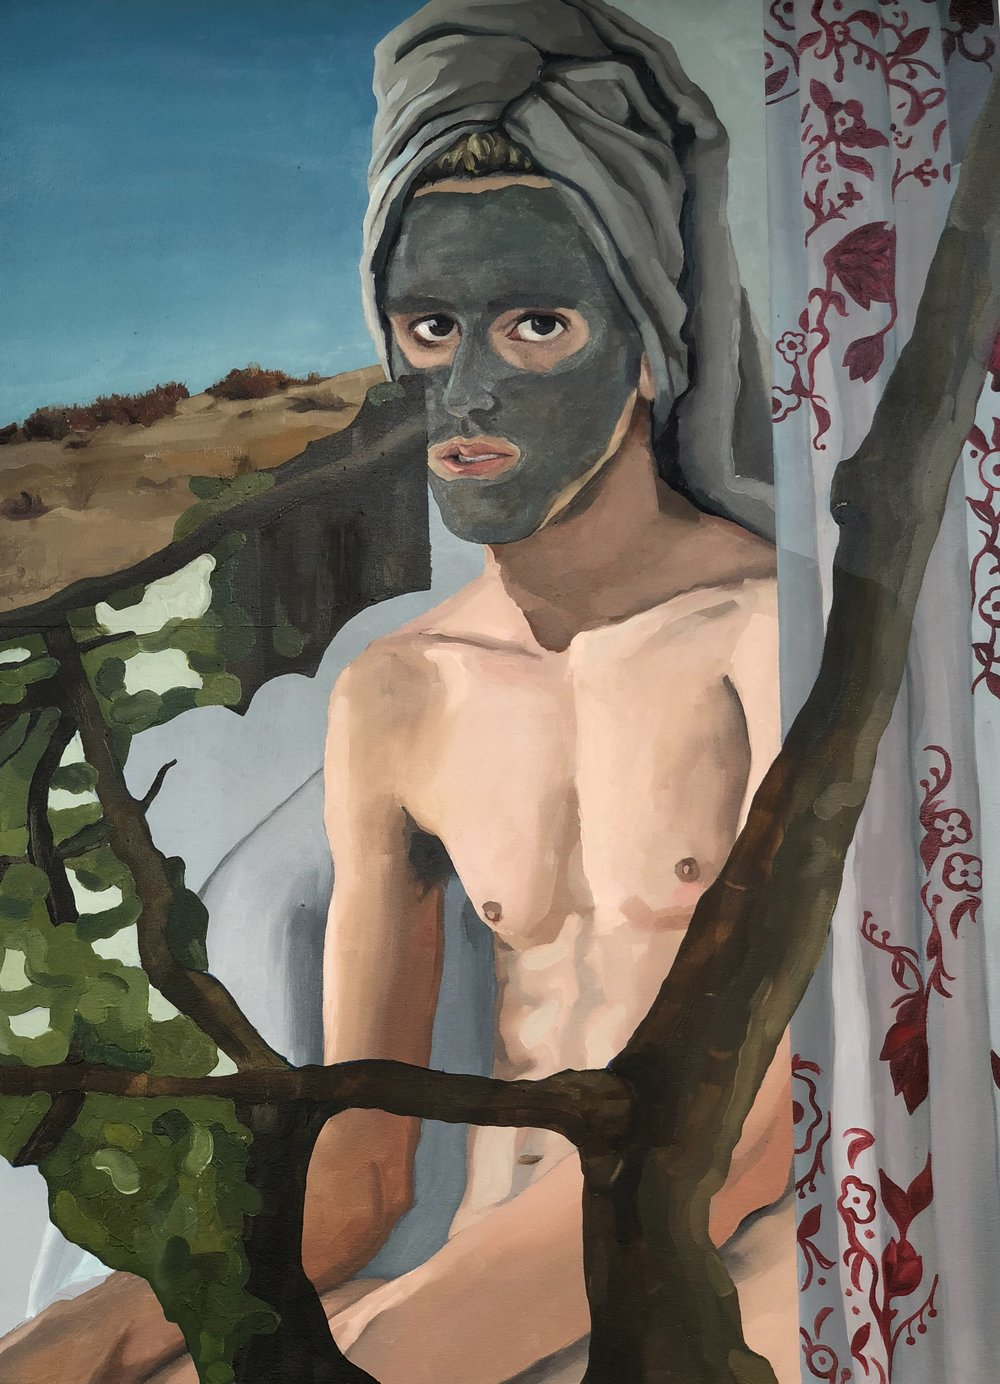 Rudy Grazziani    Man with Mask,  2018  Oil on Canvas, 2ft x 4ft